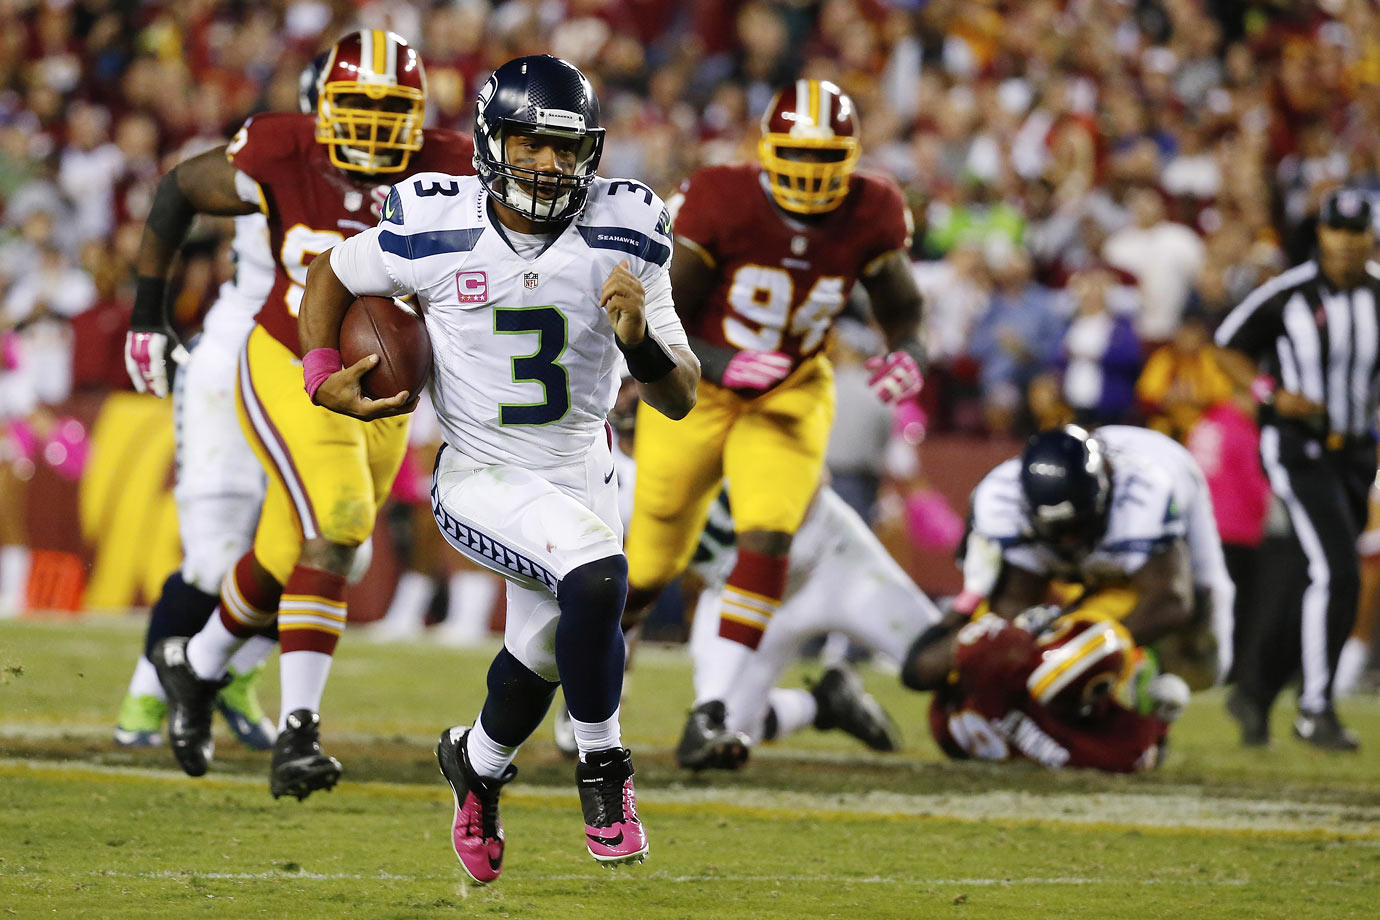 Russell Wilson owned the big stage on Monday Night Football, completing 18 of 24 passes four 201 yards and two touchdowns, and running 11 times for 122 yards and another score. The Seahawks defense shutdown Washington's rushing attack, holding Alfred Morris to a paltry 2.2 yards per carry.